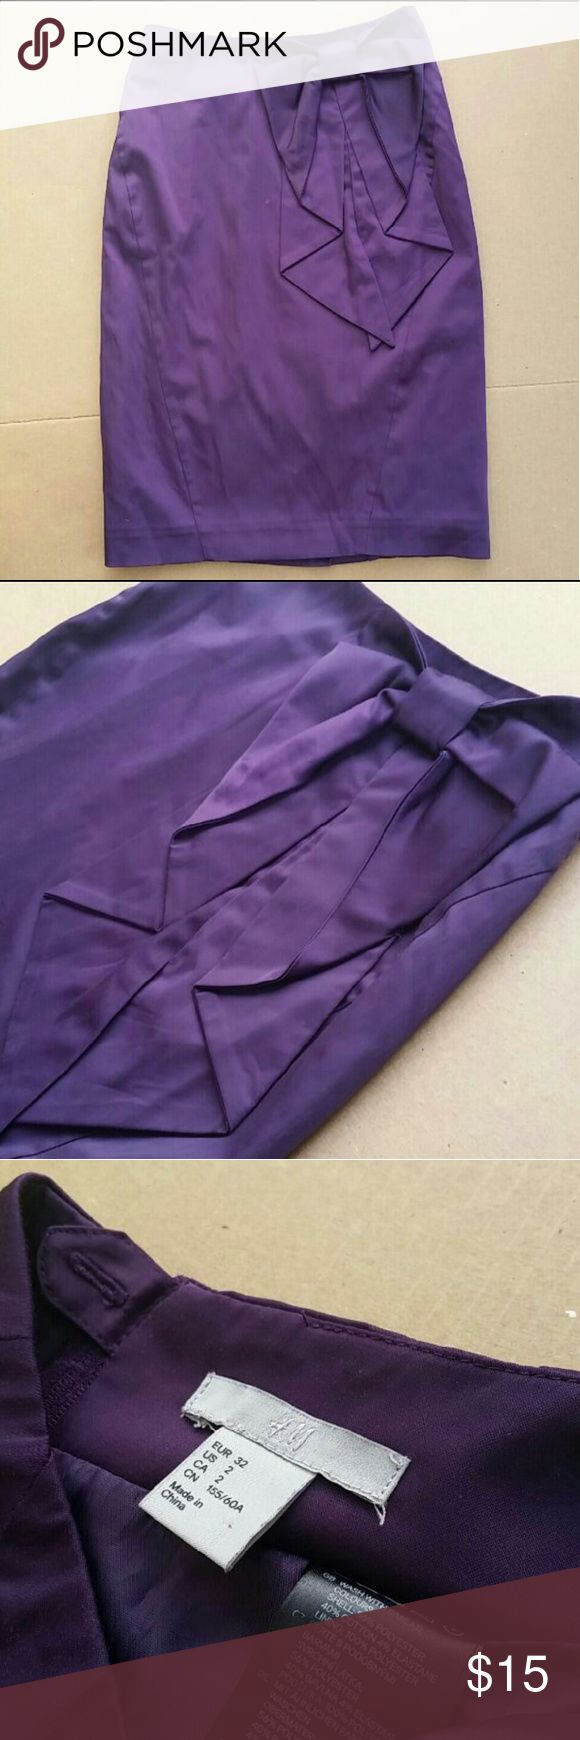 H&M purple bow pencil skirt XS / 2 Size 2 or XS h&m pencil skirt. Purple color with a Large bow. Has a very tiny stain next to the bow see picture 1( its almost not noticeable at all ) very elegant, professional look! I only wore it 2 times and bought New from H&M H&M Skirts Pencil